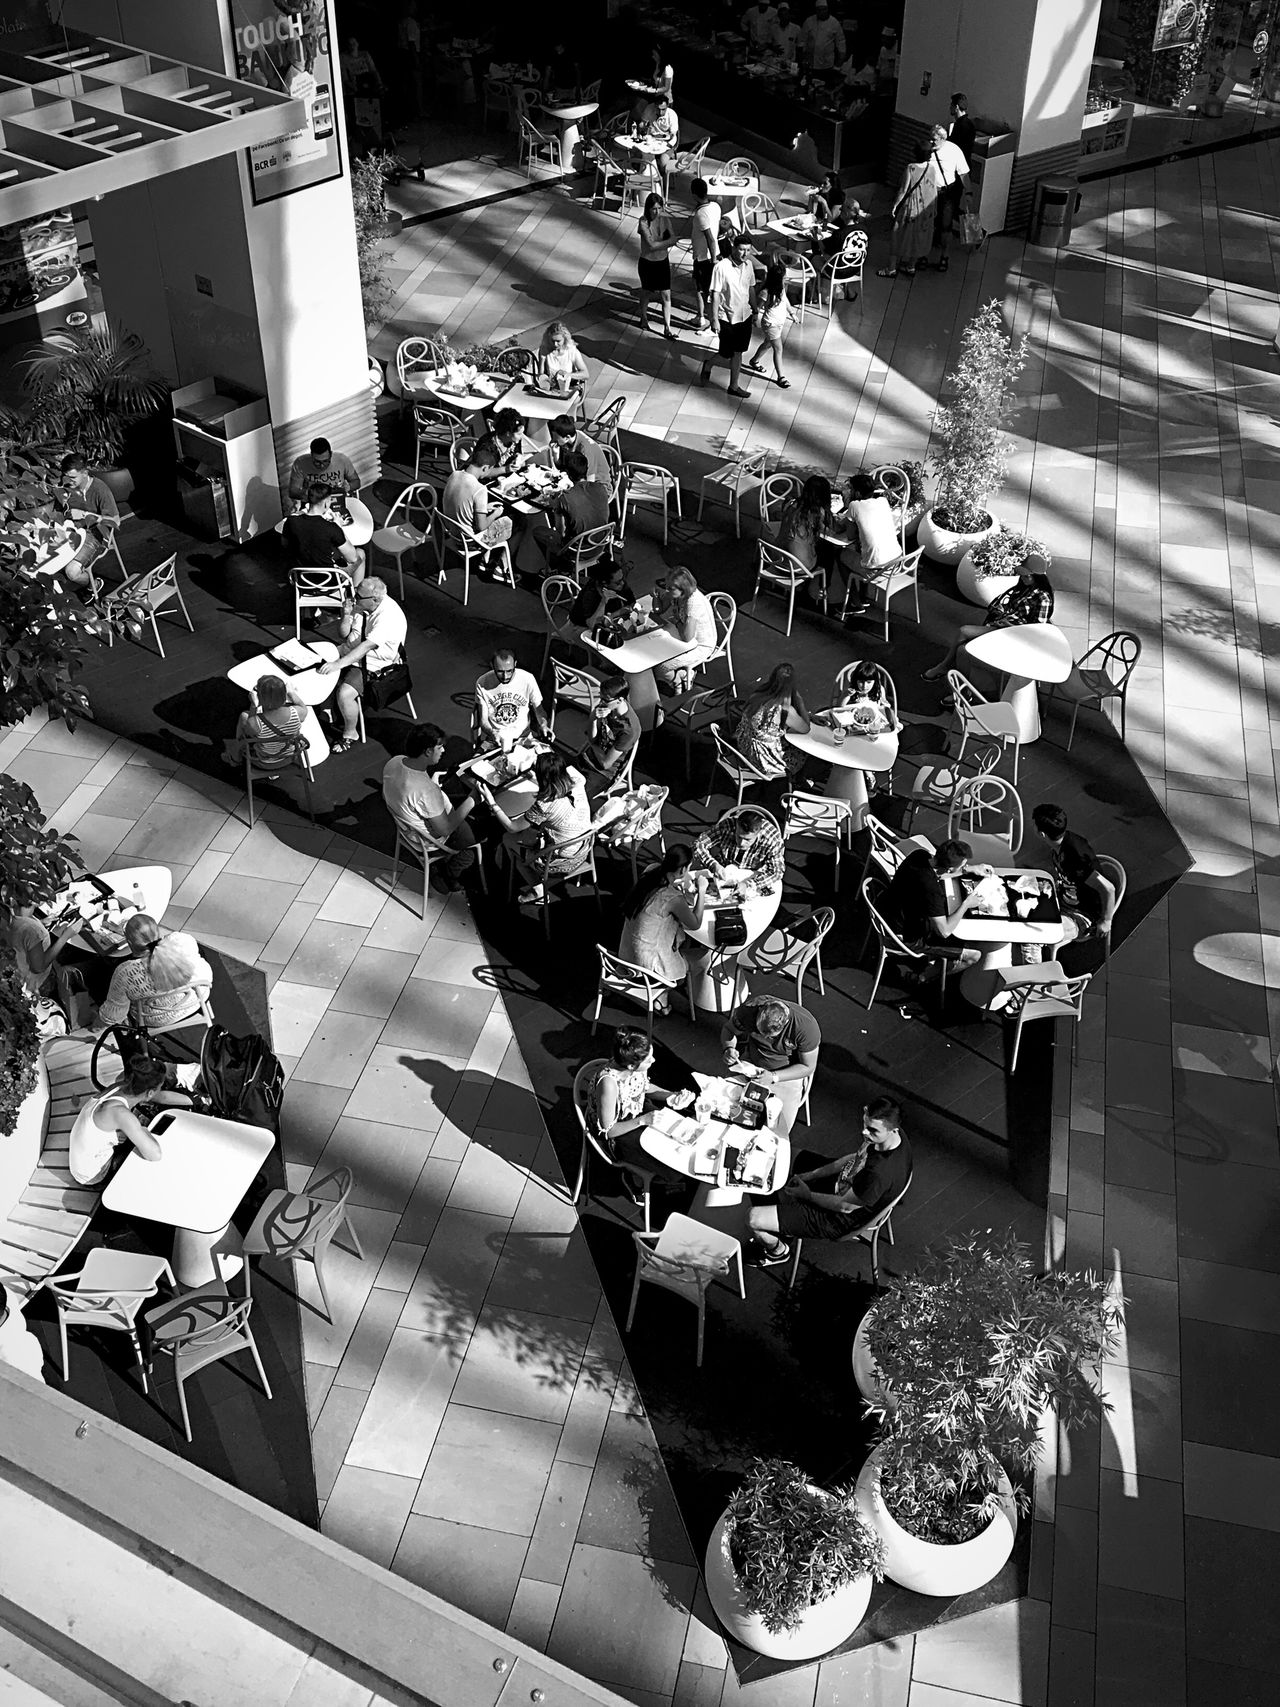 Bw series 010 Blackandwhite Crowd Vscocam Shootermag AMPt - Street Photography VSCO IPhoneography Black And White Monochrome Black & White